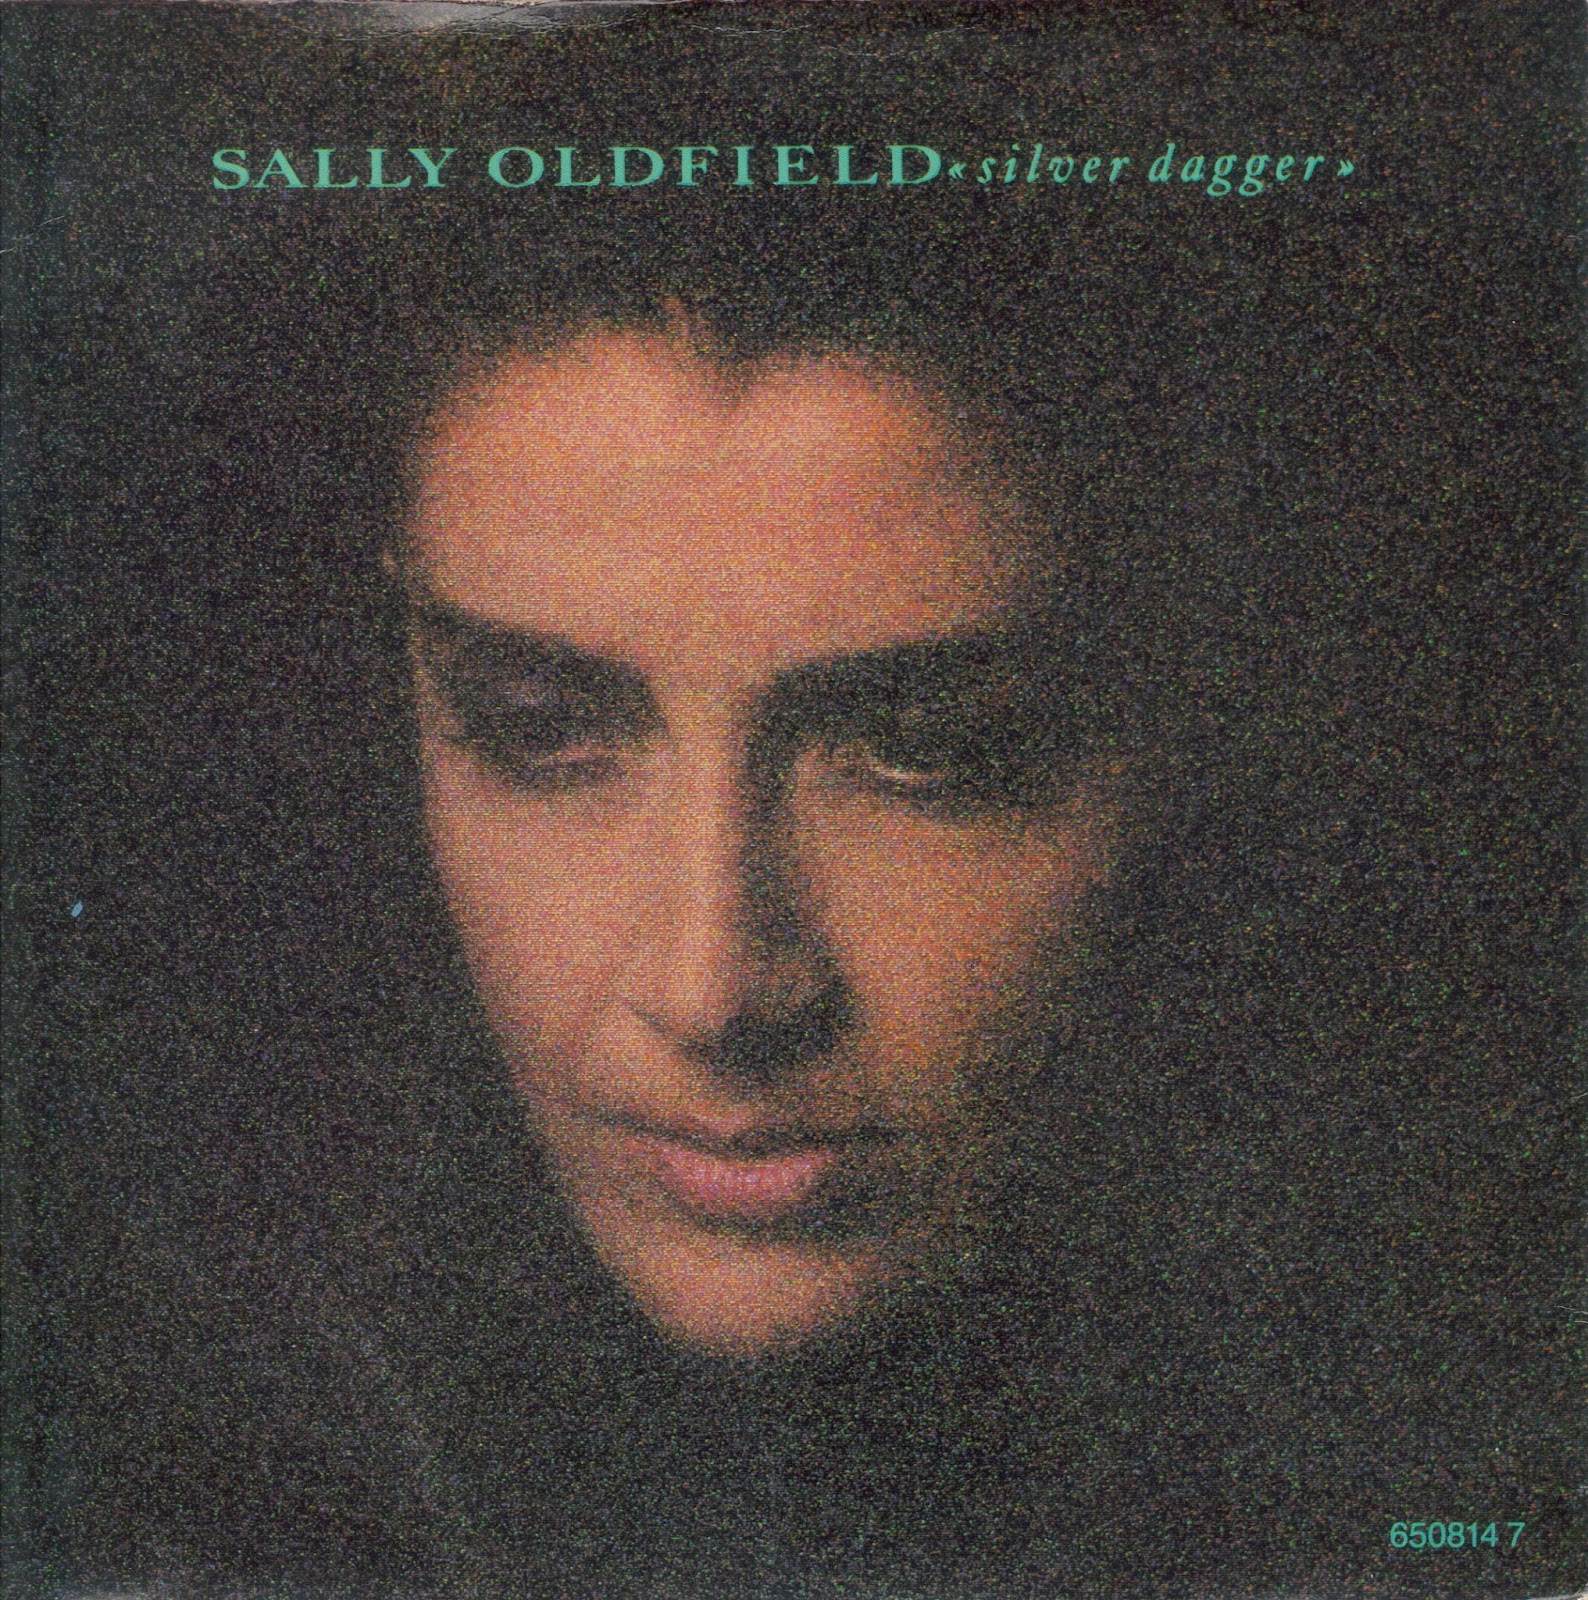 oldfield single girls Definitions of women of ireland mike oldfield song, synonyms, antonyms, derivatives of women of ireland mike oldfield song, analogical dictionary of women of ireland mike oldfield song (english.